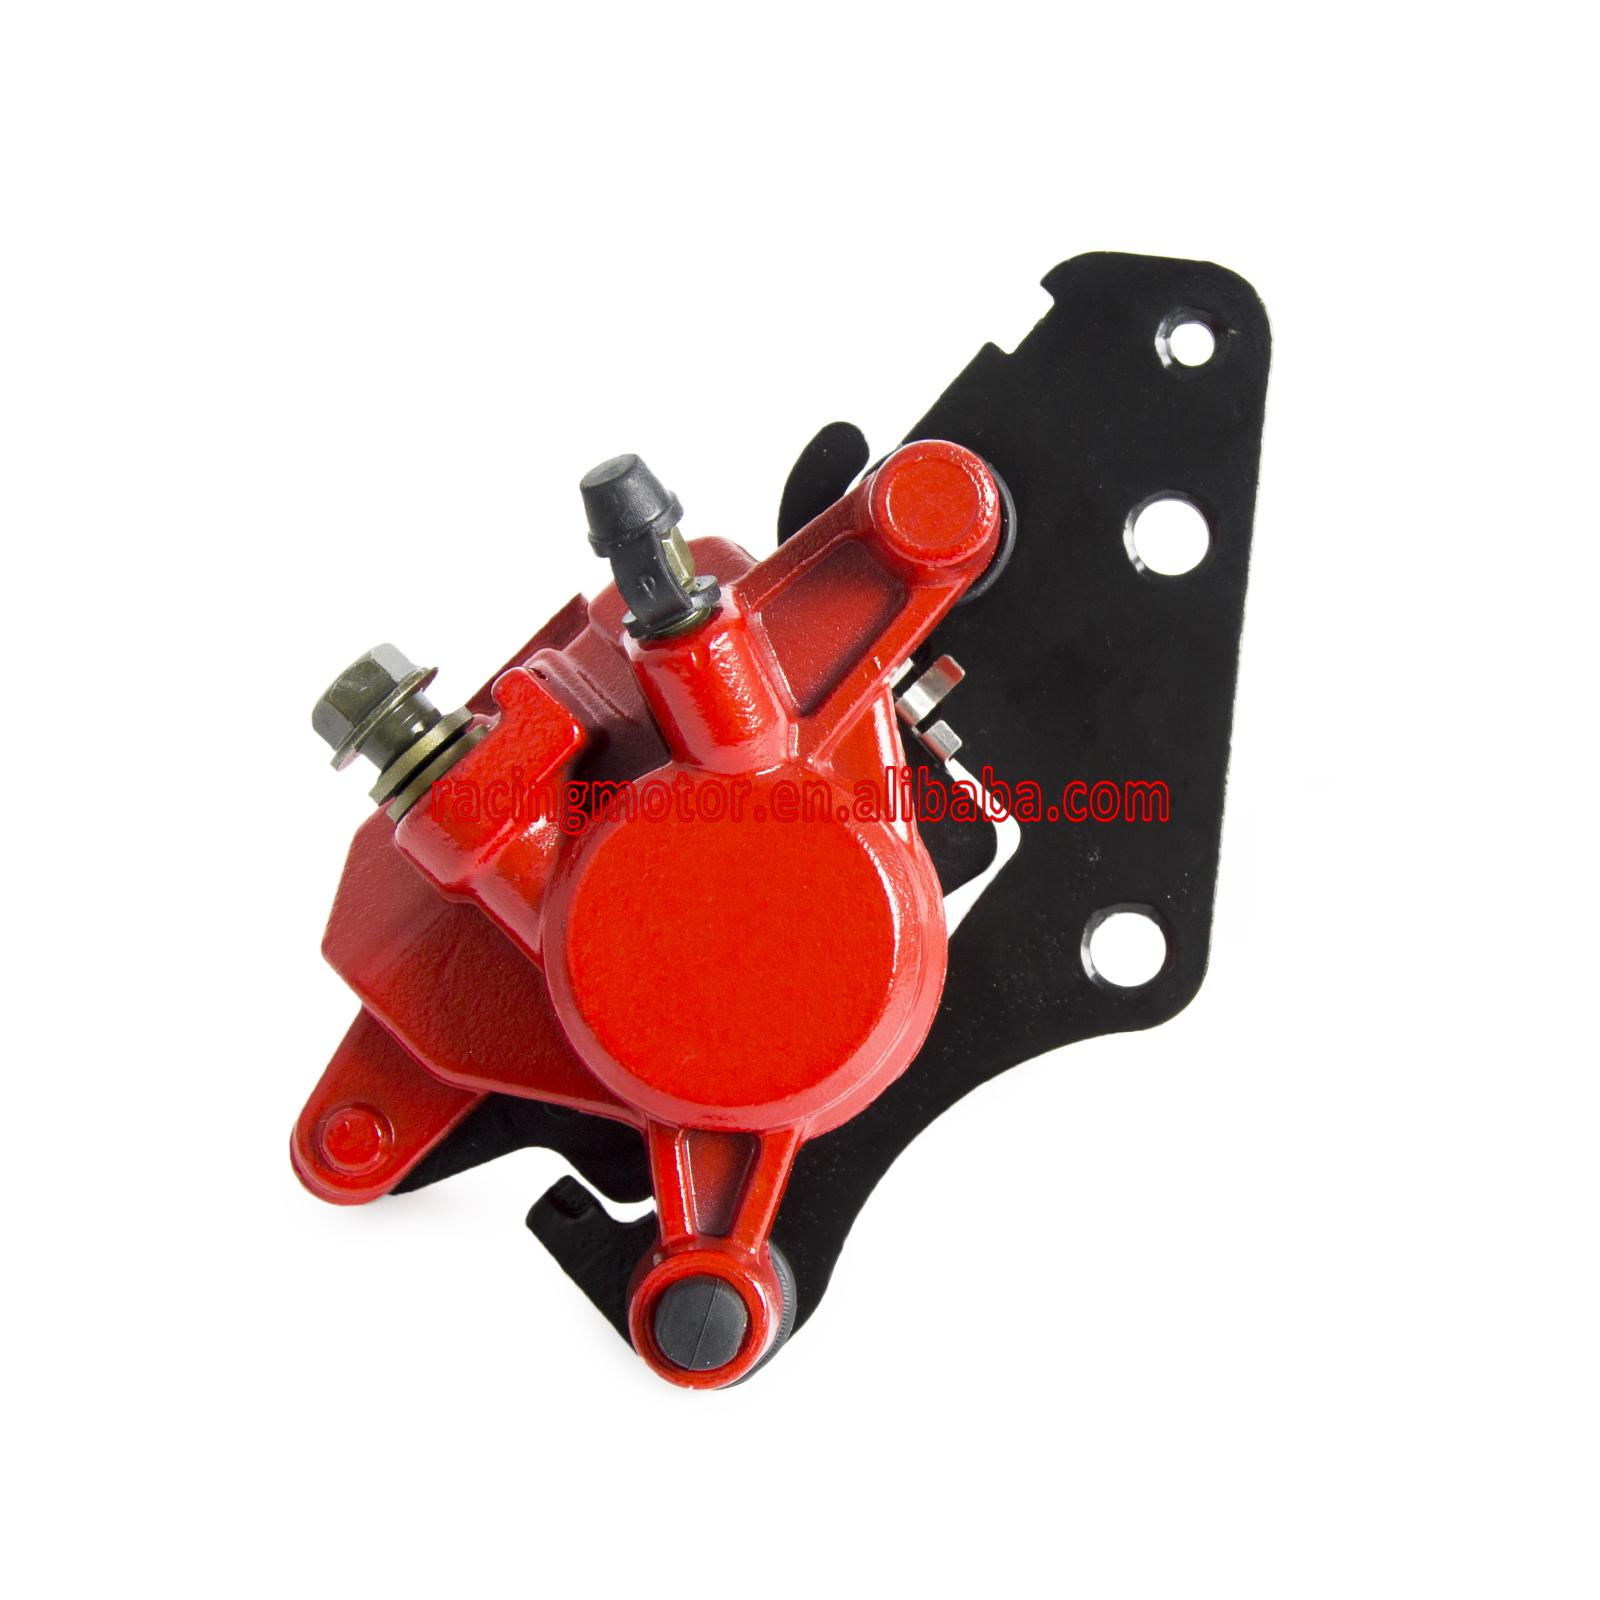 Brake Caliper Assy With Pads For Yamaha XC125E  32P-F580U-11-00 brake caliper assy with pads for yamaha xc125e axis treet e53j 2009 2013 210 2011 2012 number 32p f580u 11 00